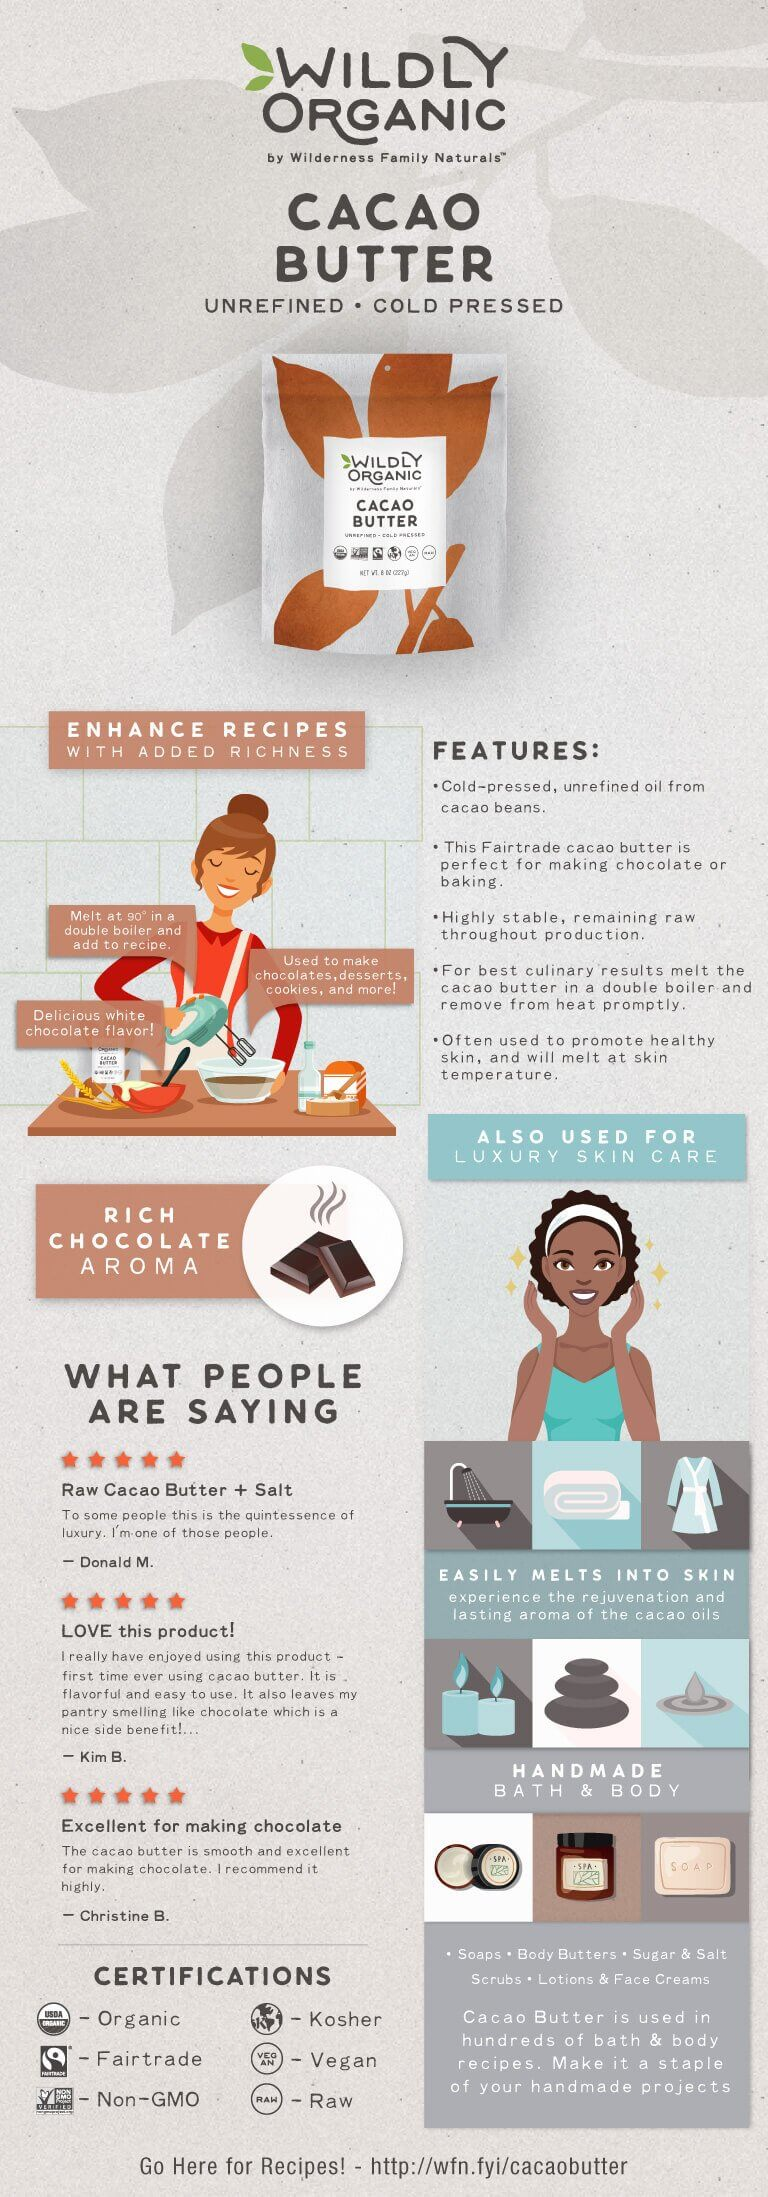 Learn about cacao butter!